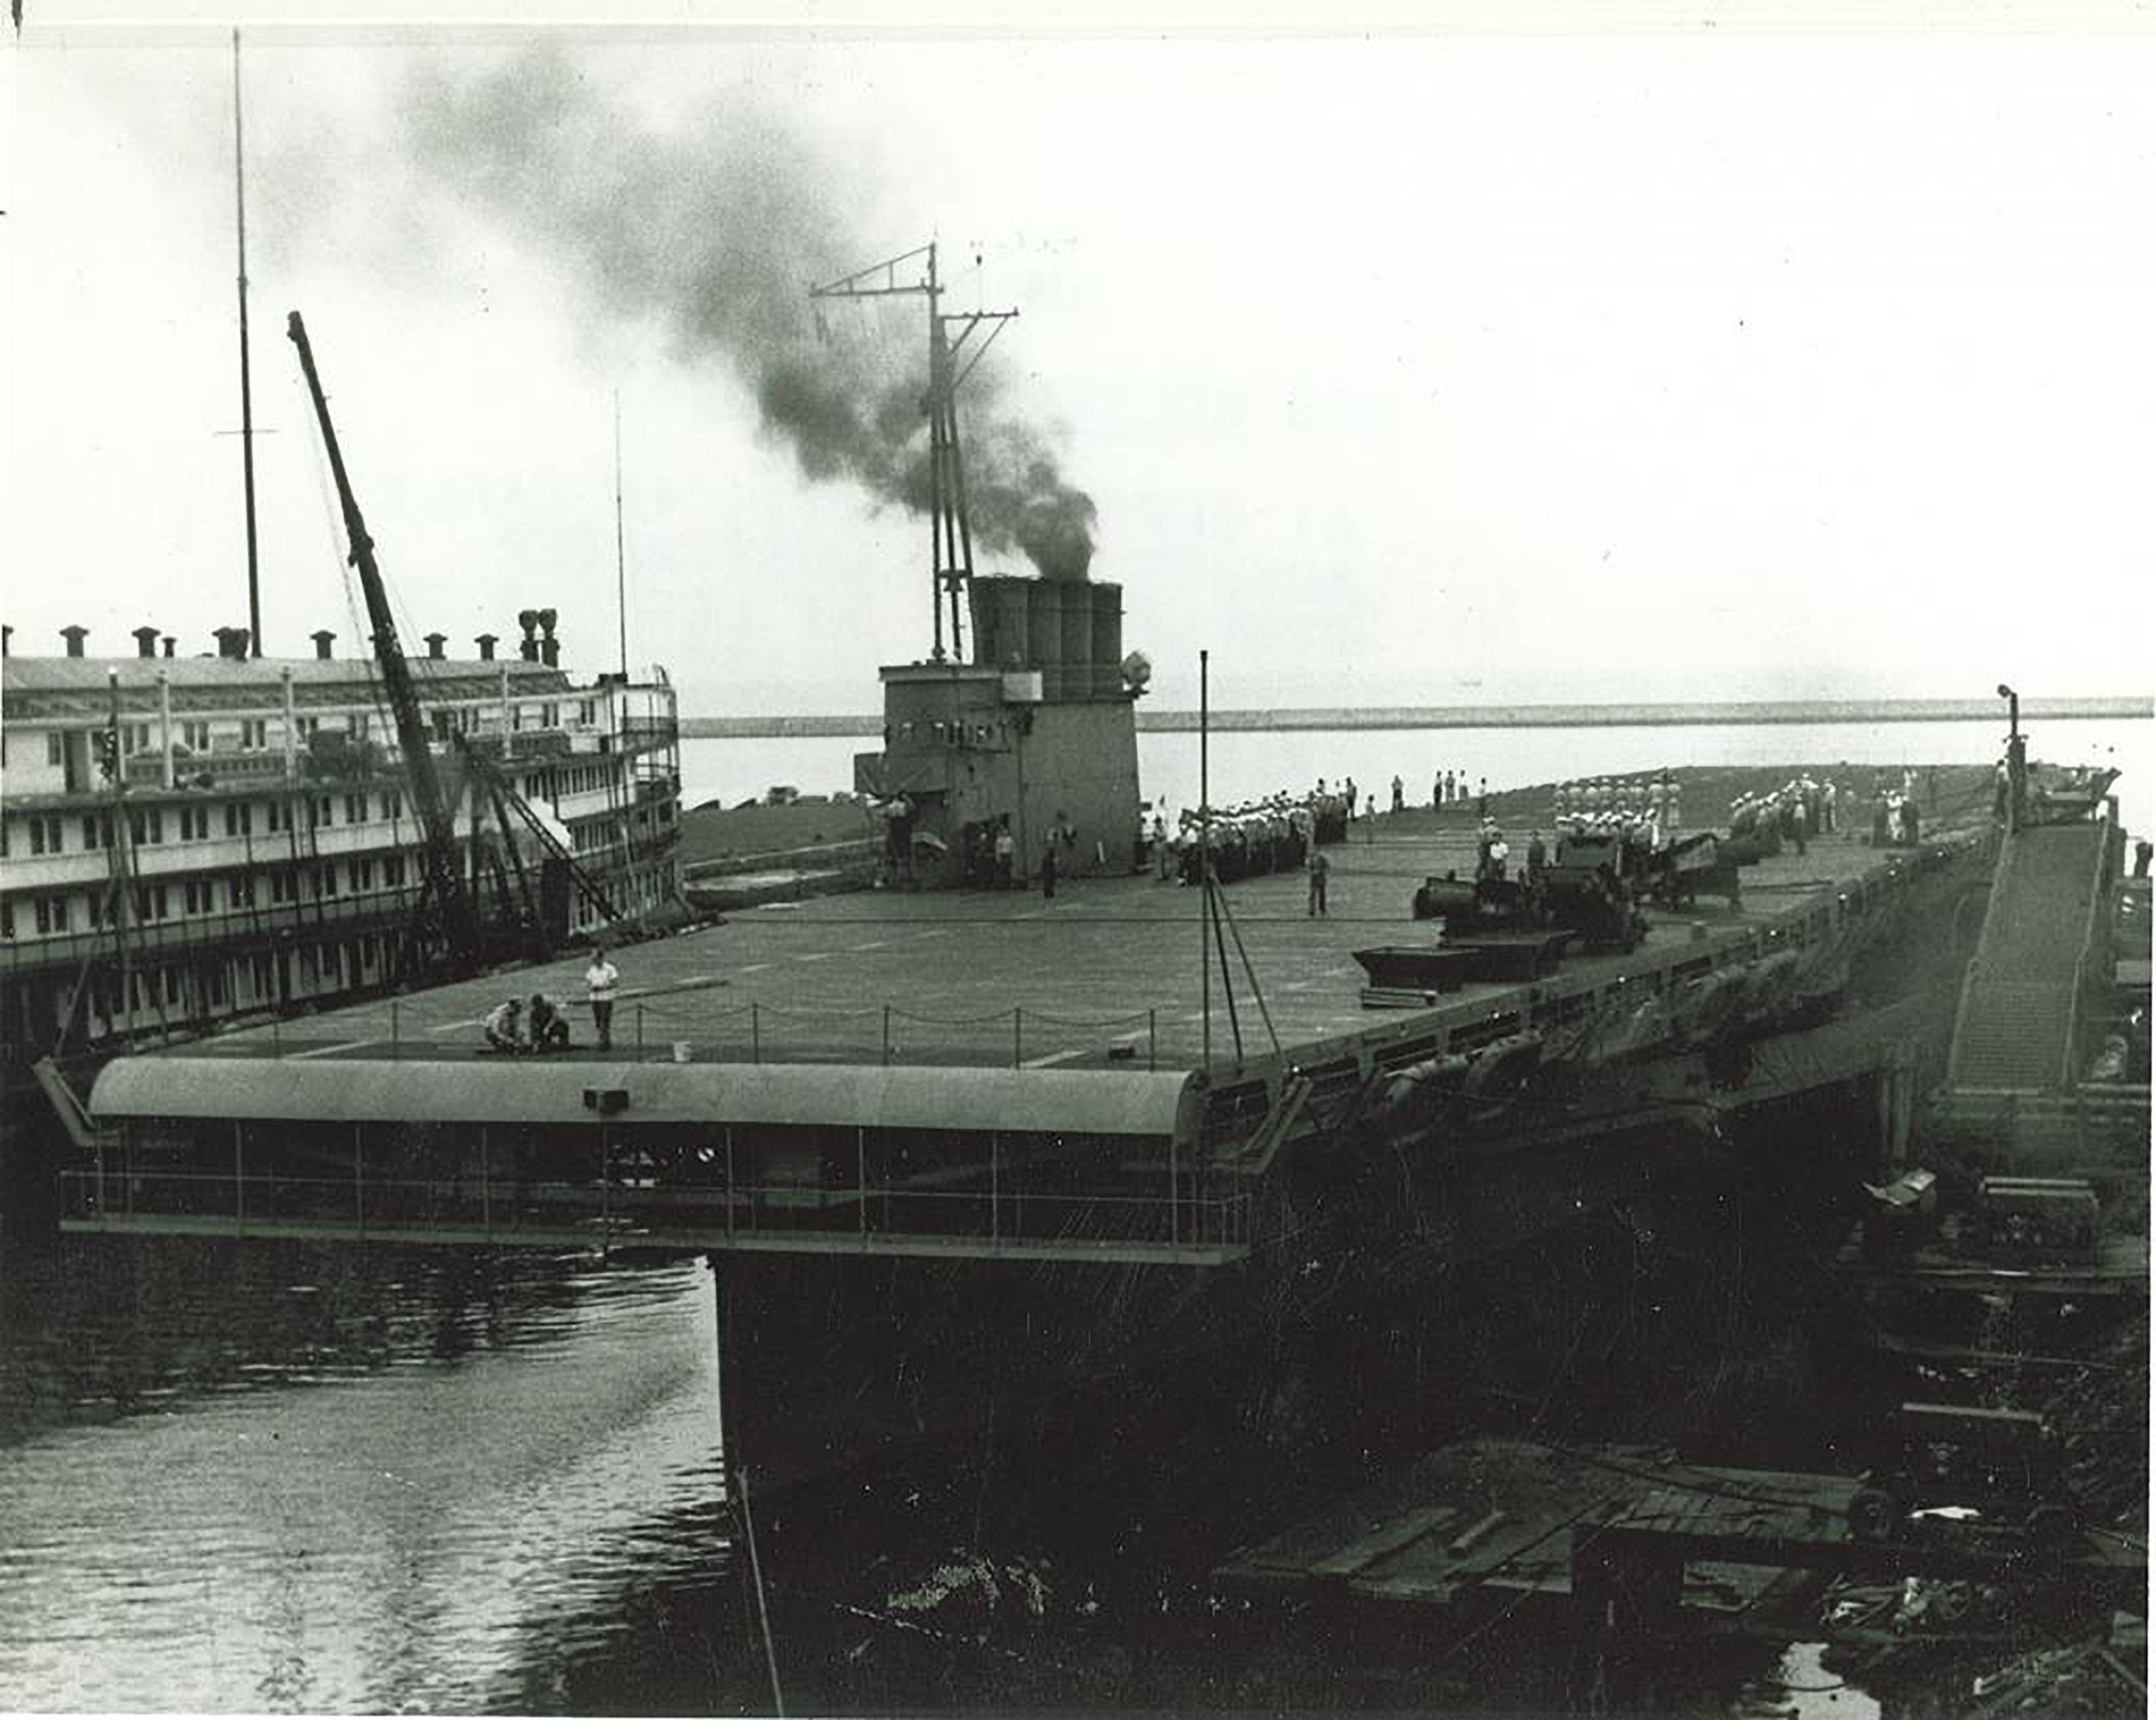 As its sister passenger ship, left, waits for its makeover, a former Great Lakes tourist ship is ready to serve as a makeshift aircraft carrier. The two ships were used to train 15,000 pilots and 40,000 crew members in Lake Michigan during World War II.